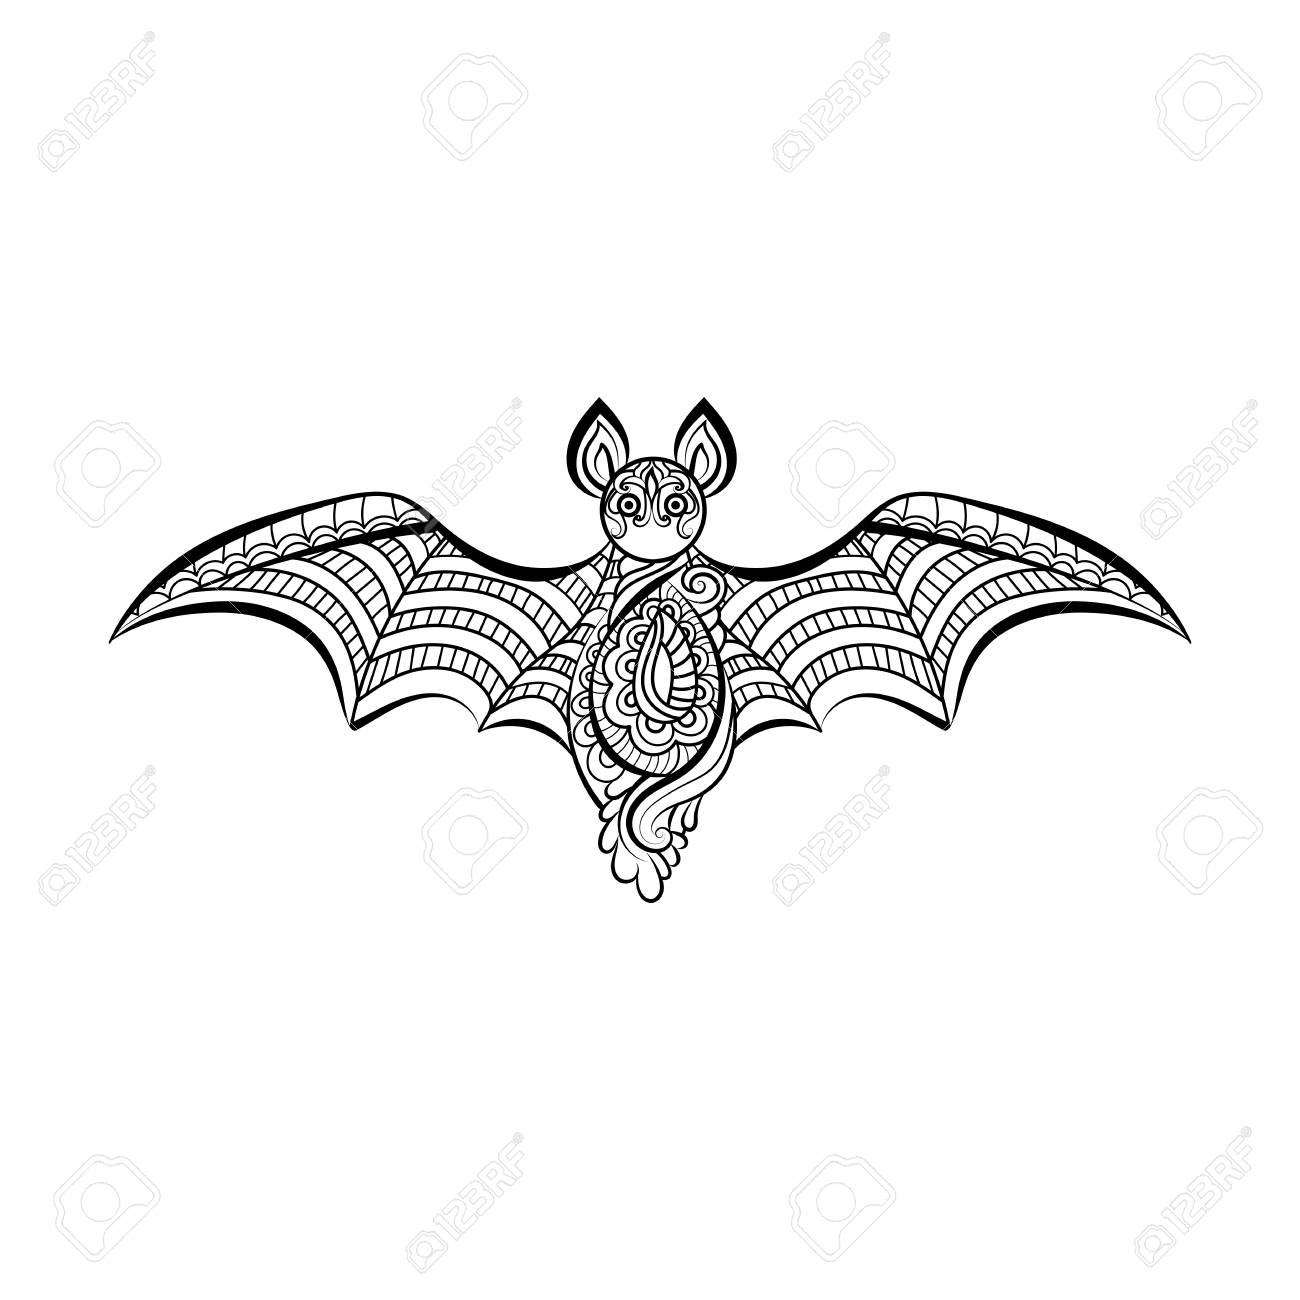 1300x1300 Decorative Bat. Hand Drawn Sketch For Adult Anti Stress Coloring